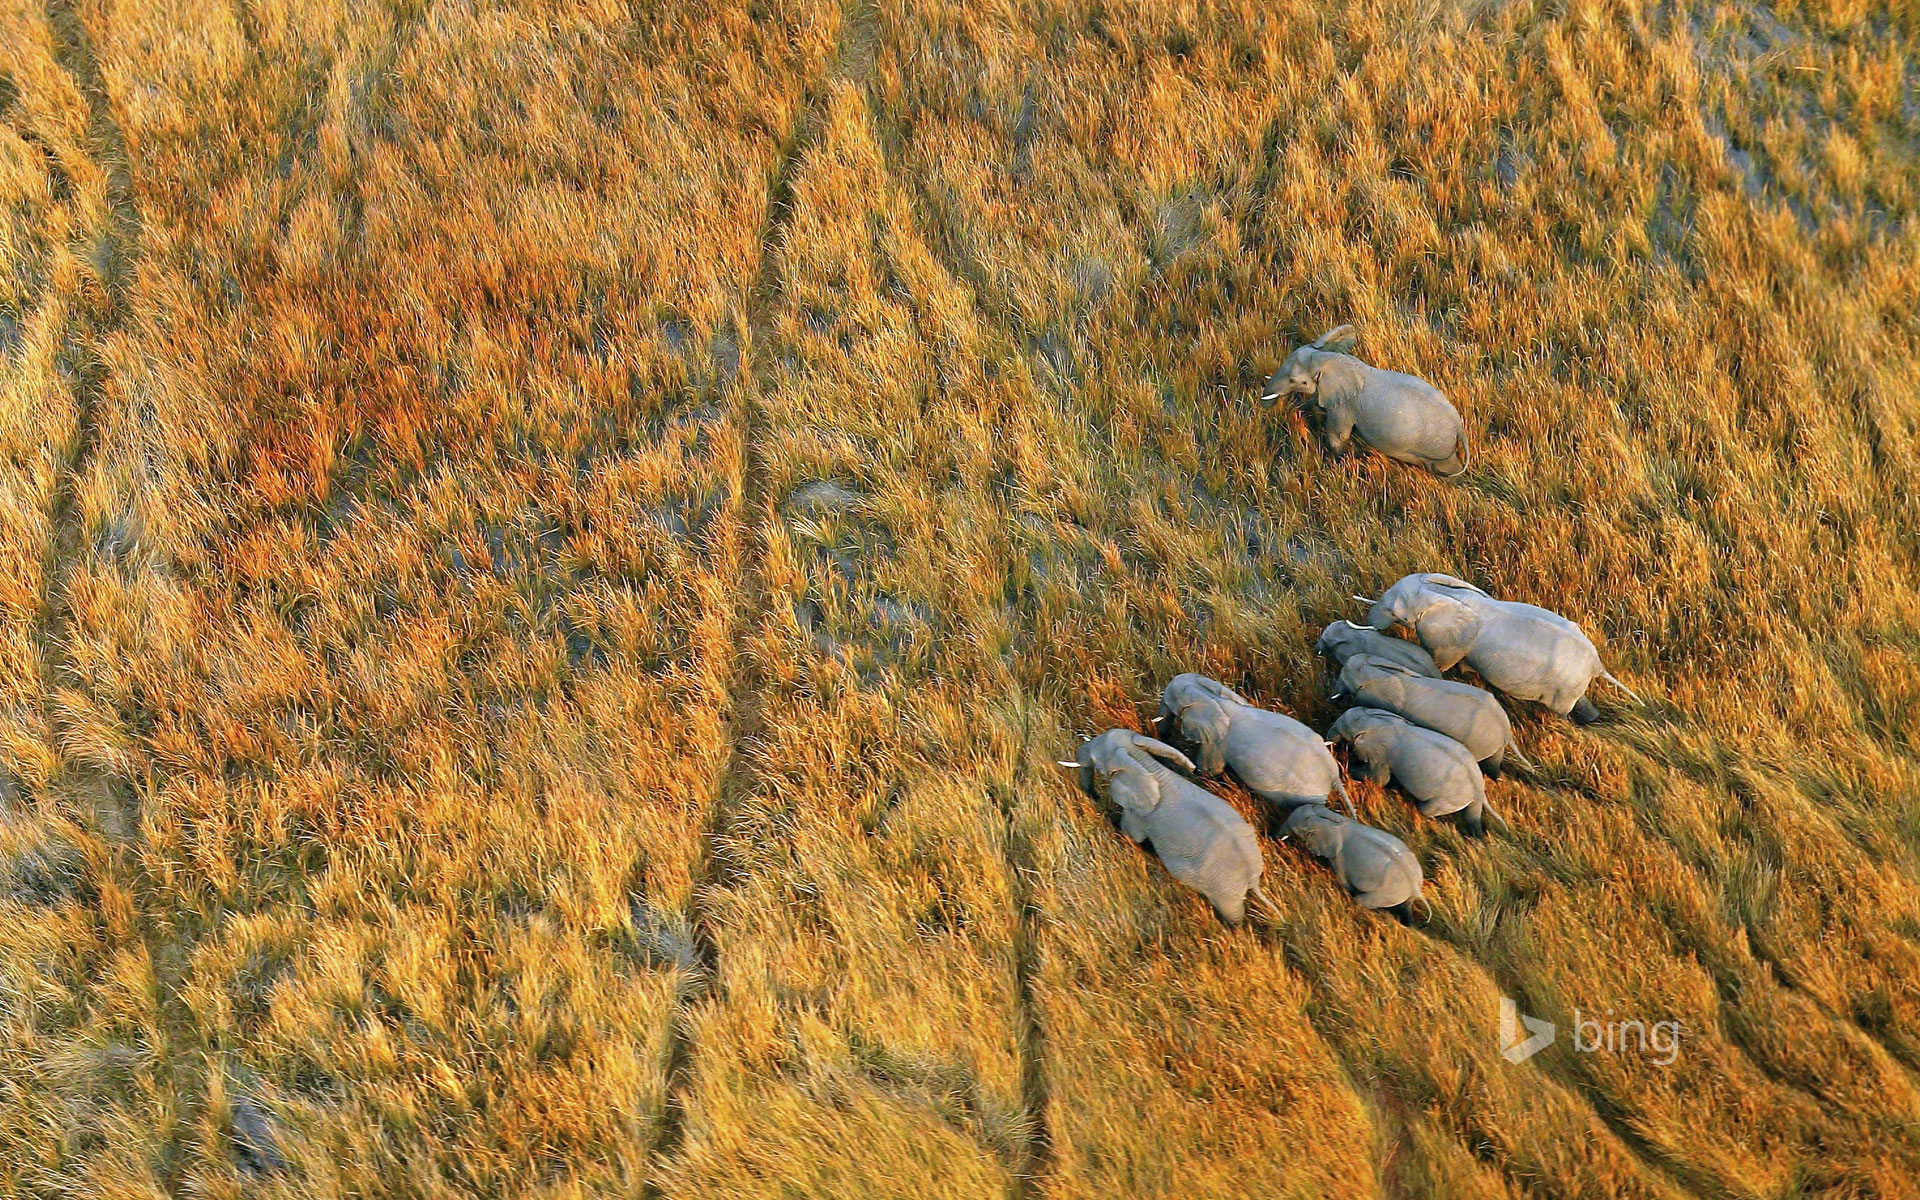 Elephants in the Okavango Delta Botswana Michael PolizaGetty 1920x1200